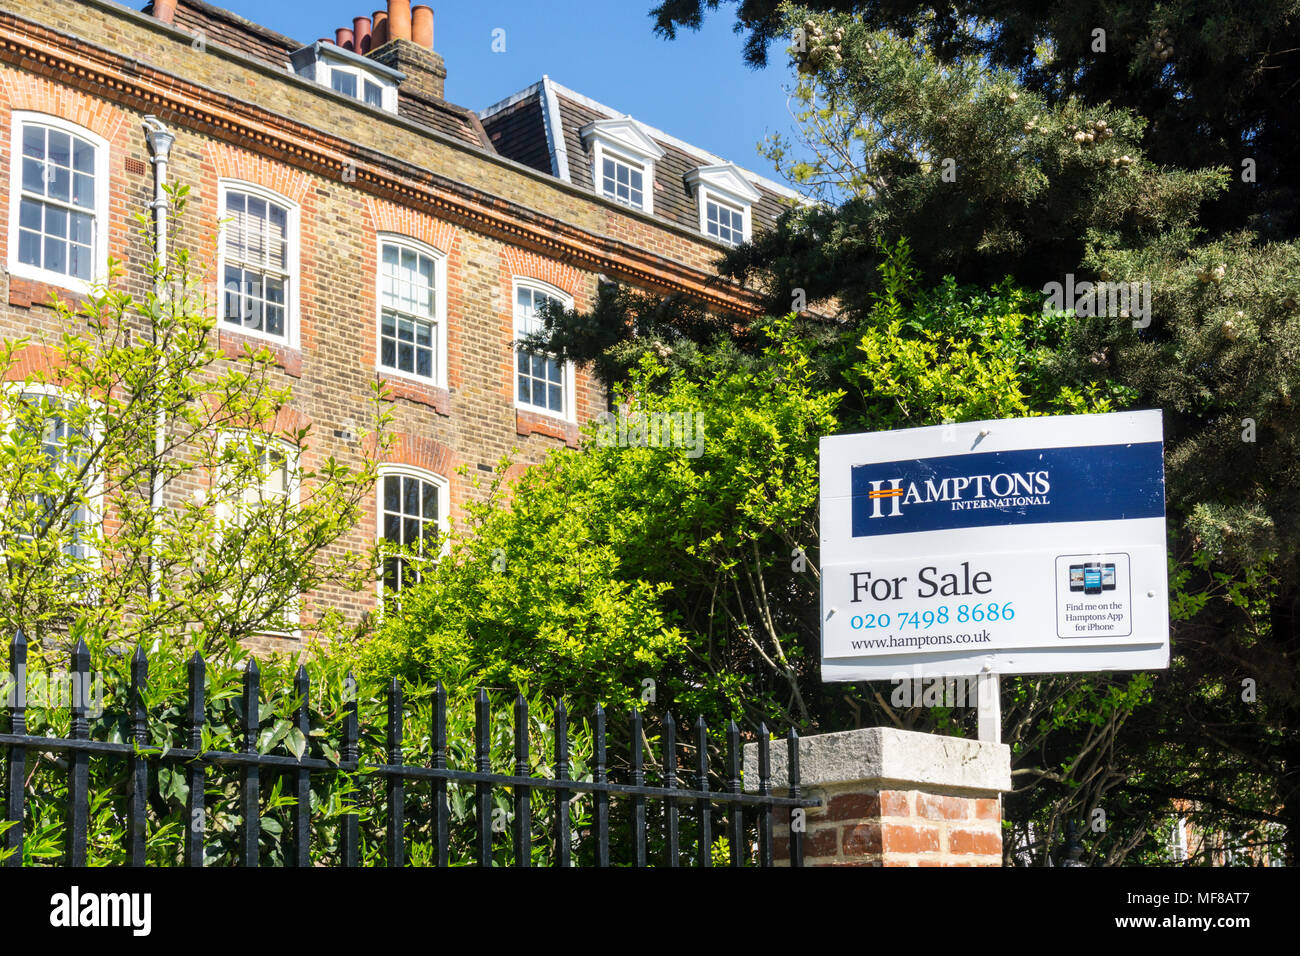 A Hamptons International Estate Agents For Sale Signboard Outside Homes On  Clapham Common North Side In Lambeth, South London